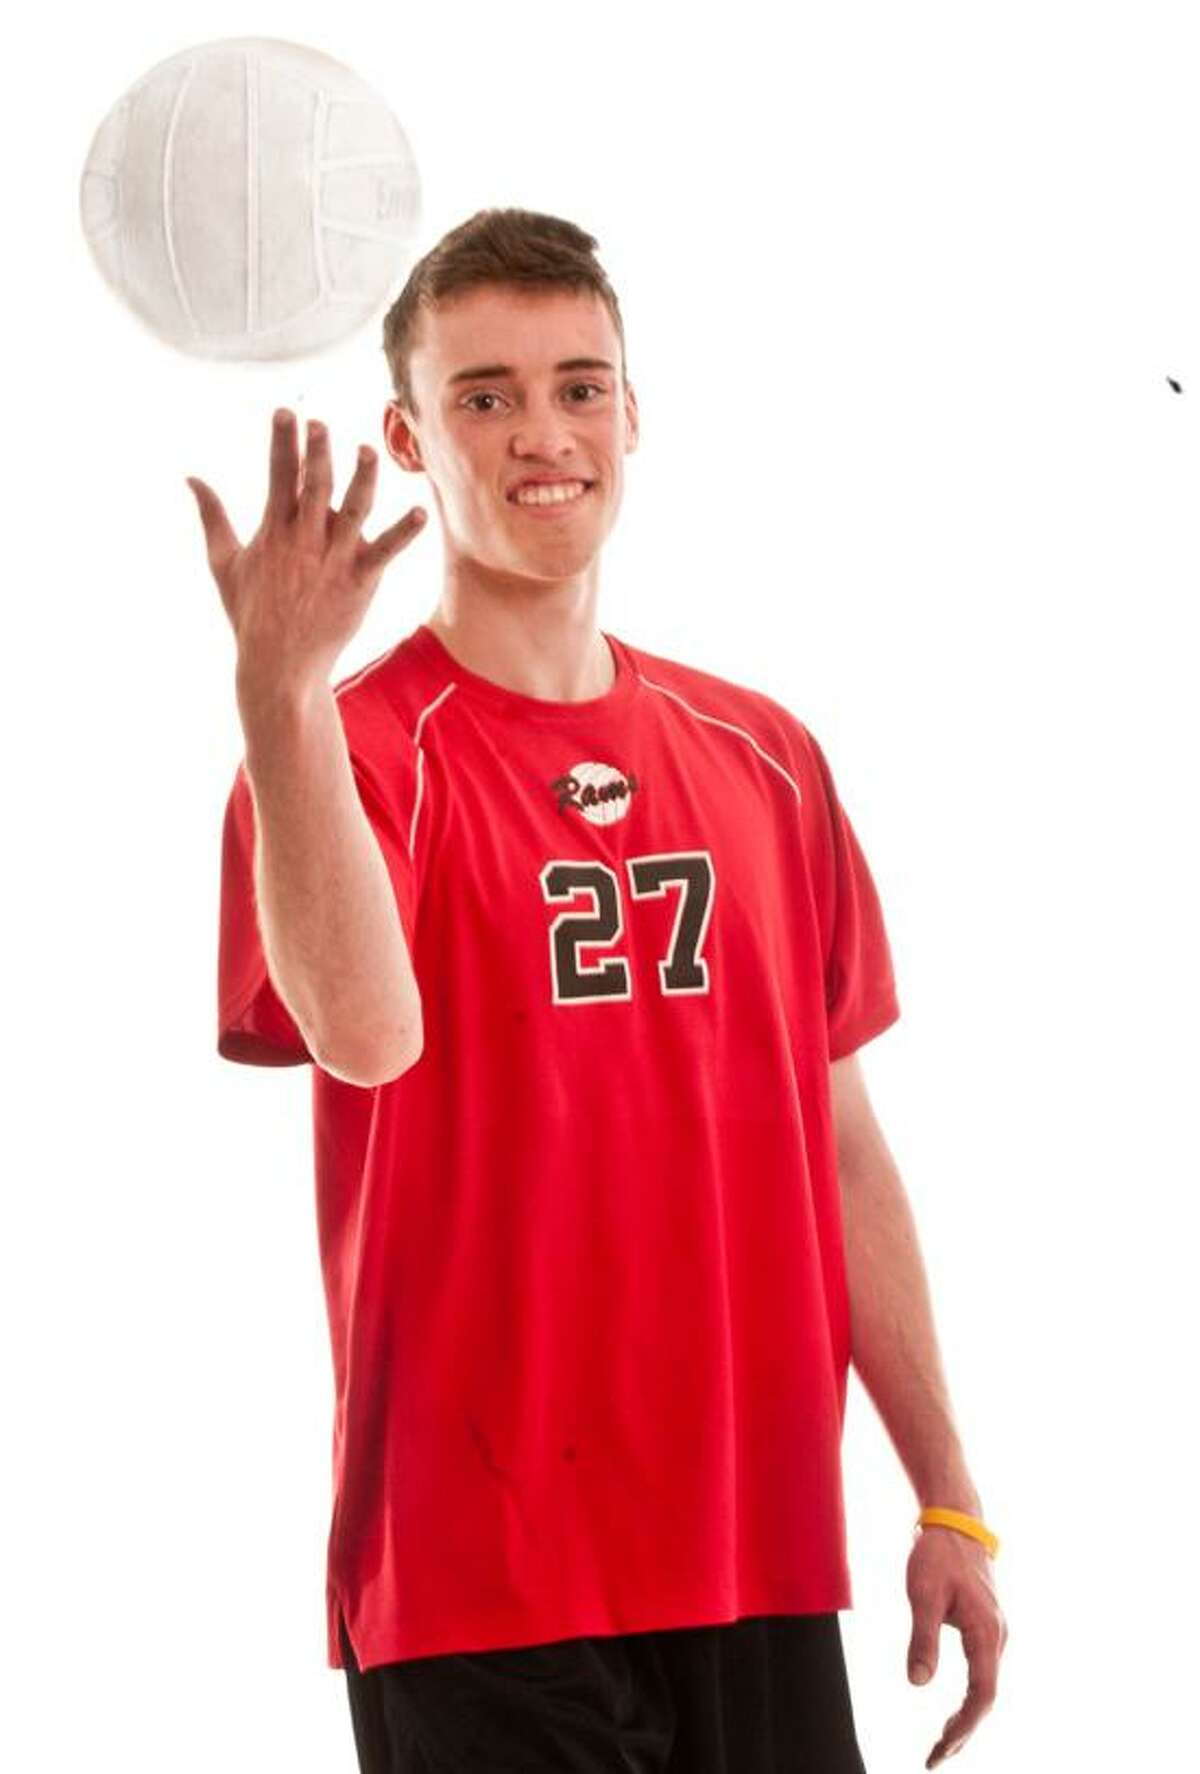 AREA BOYS VOLLEYBALL MVP: Ryan Cuppernull, Cheshire. Melanie Stengel/Register.